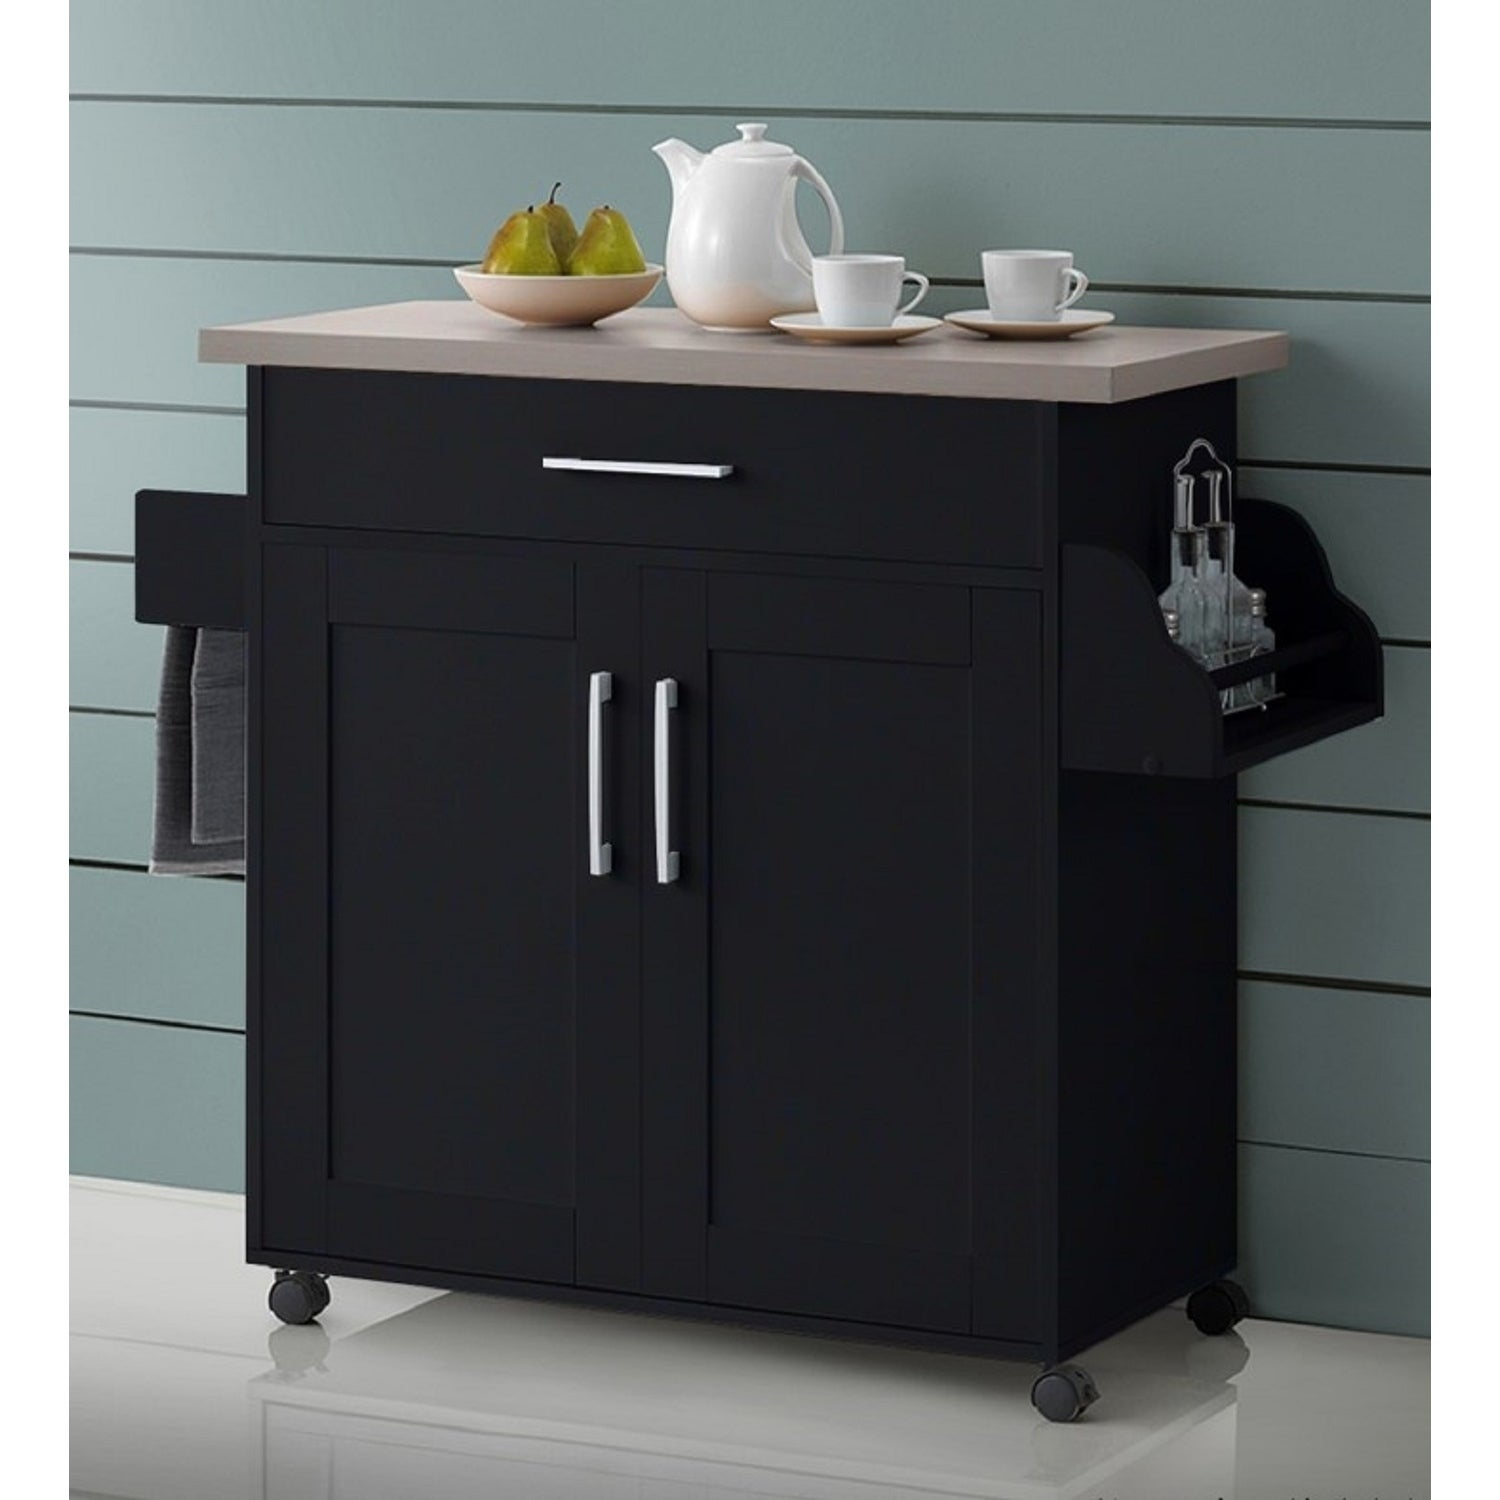 Hodedah Mobile Kitchen Island with Spice Rack and Towel R...